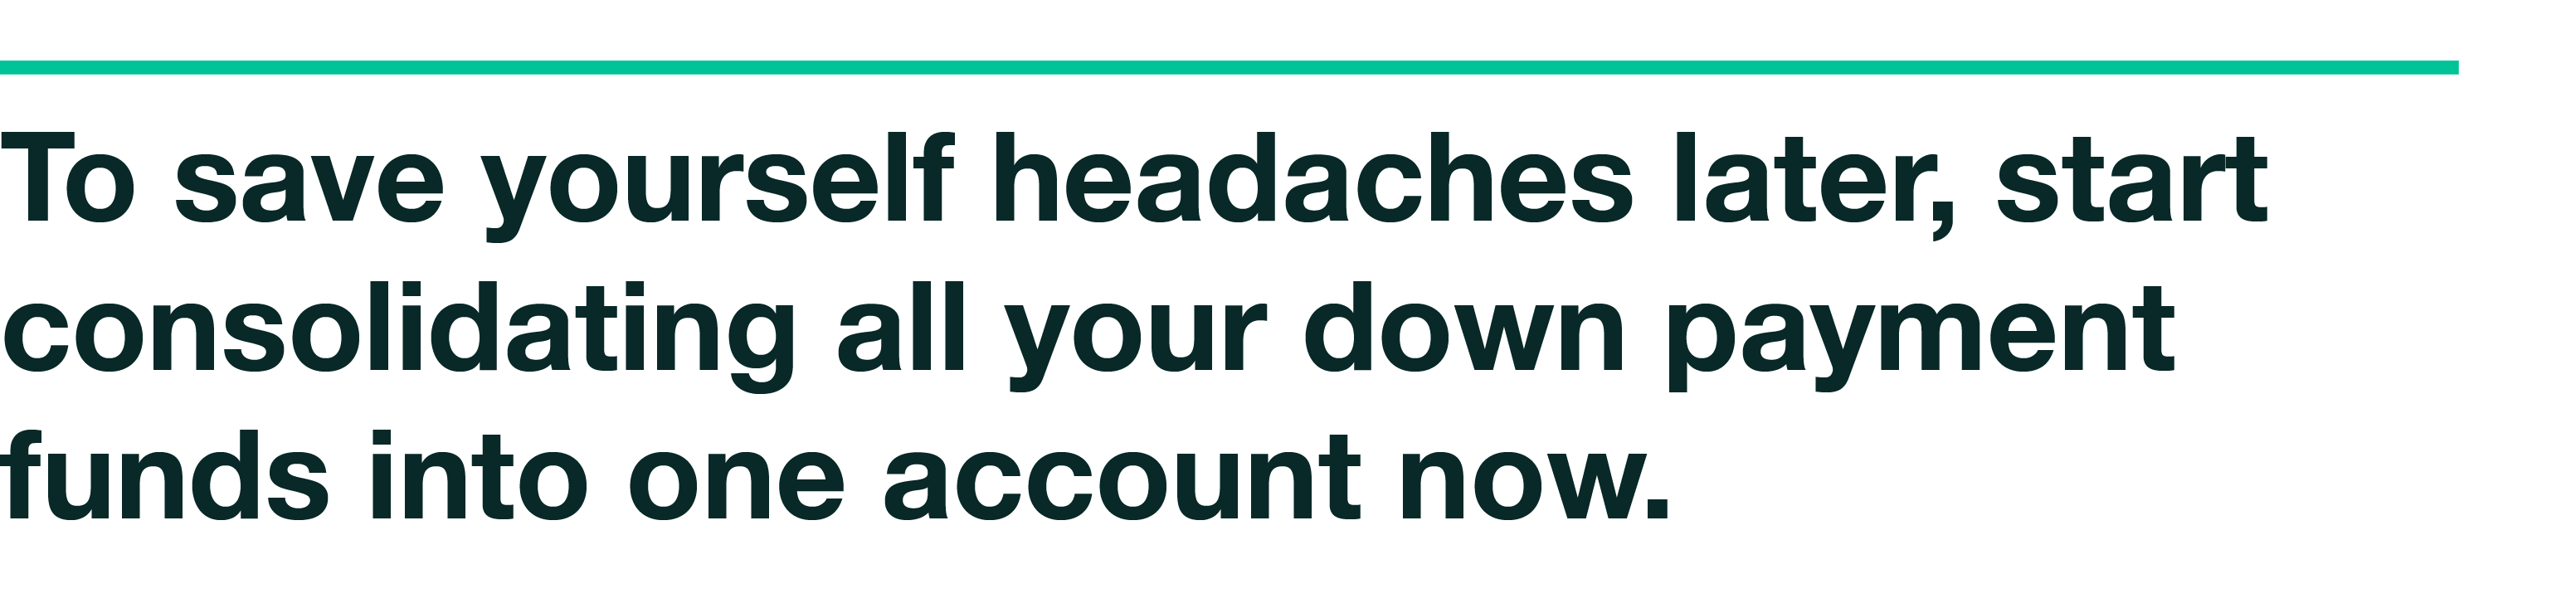 Quote: To Save Yourself Headaches Later, Start Consolidating All Your Down Payment Funds Into One Account Now